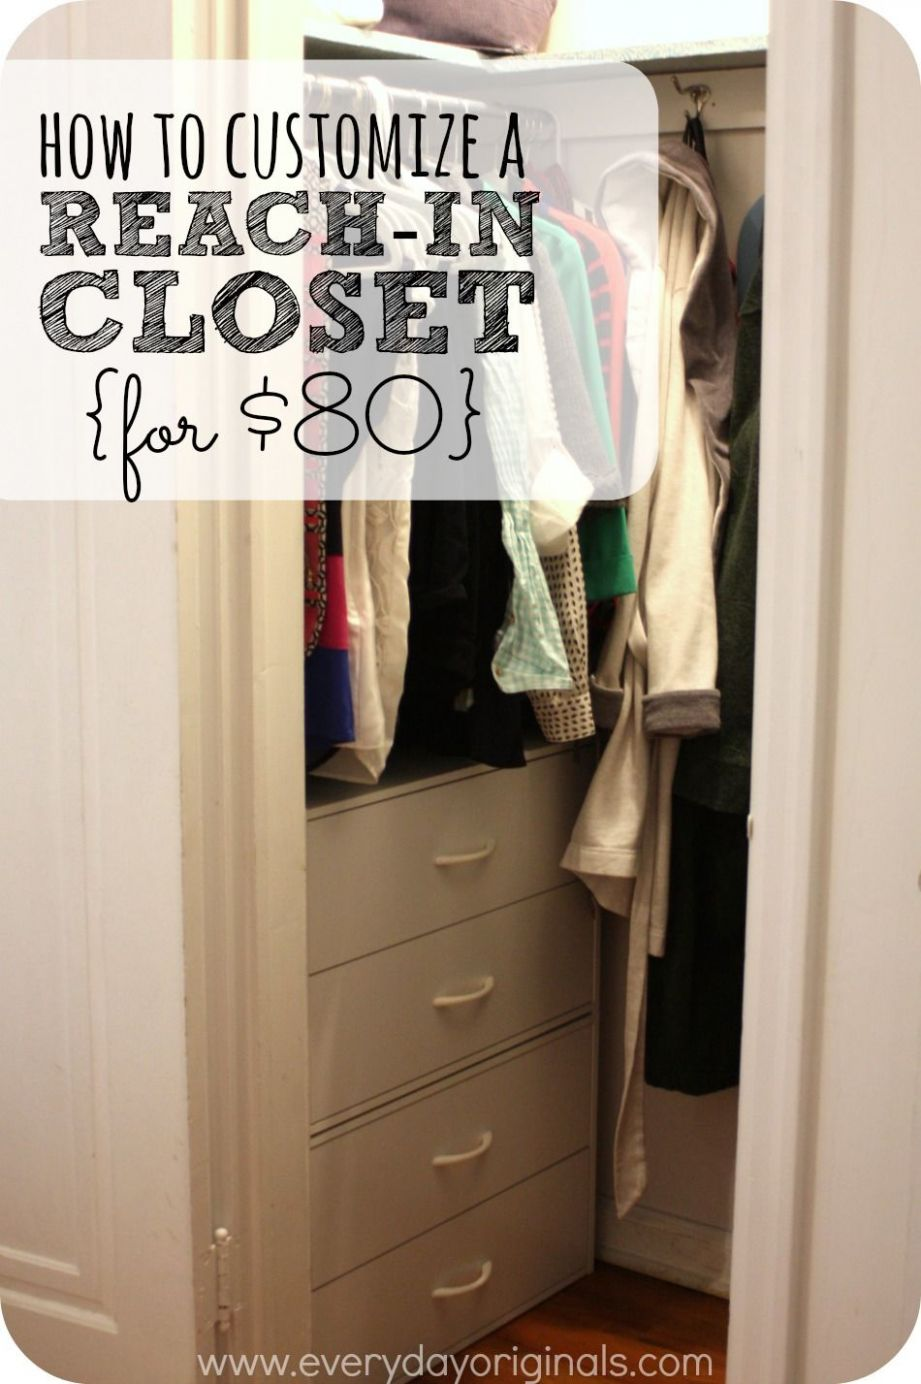 how to customize a reach-in closet for $8 (With images) | Small ...